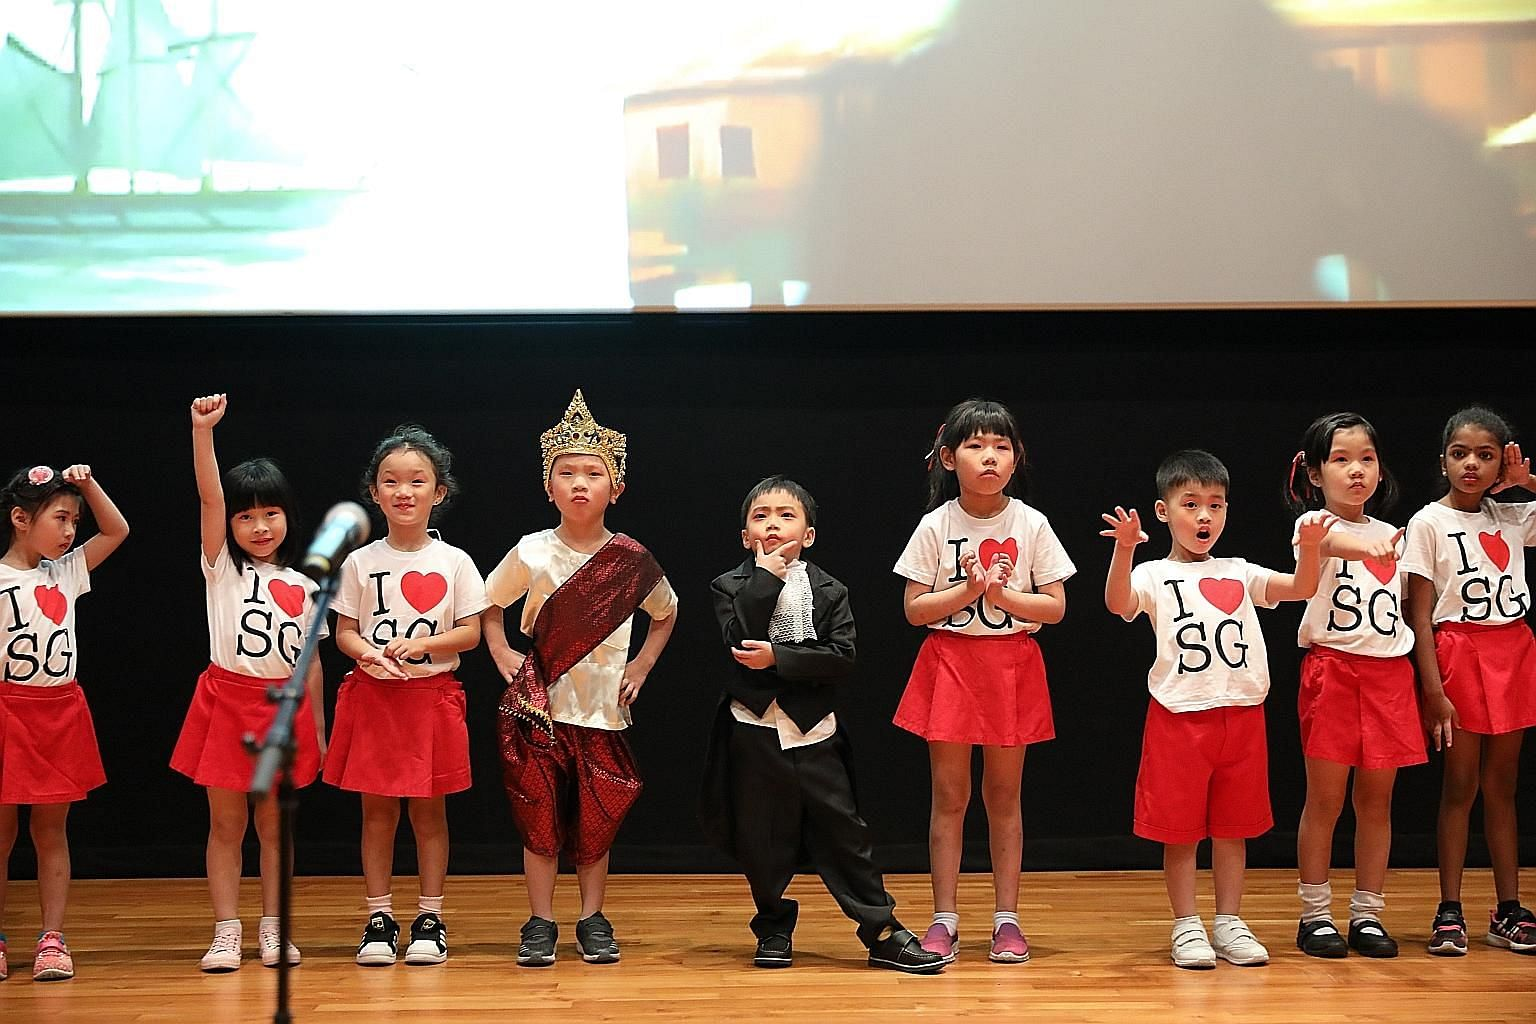 Children from PCF Sparkletots performing a skit at the National Museum of Singapore's Gallery Theatre yesterday about Singapore's past, present and future. The skit was among the performances that kicked off this year's Joy of Reading programme.